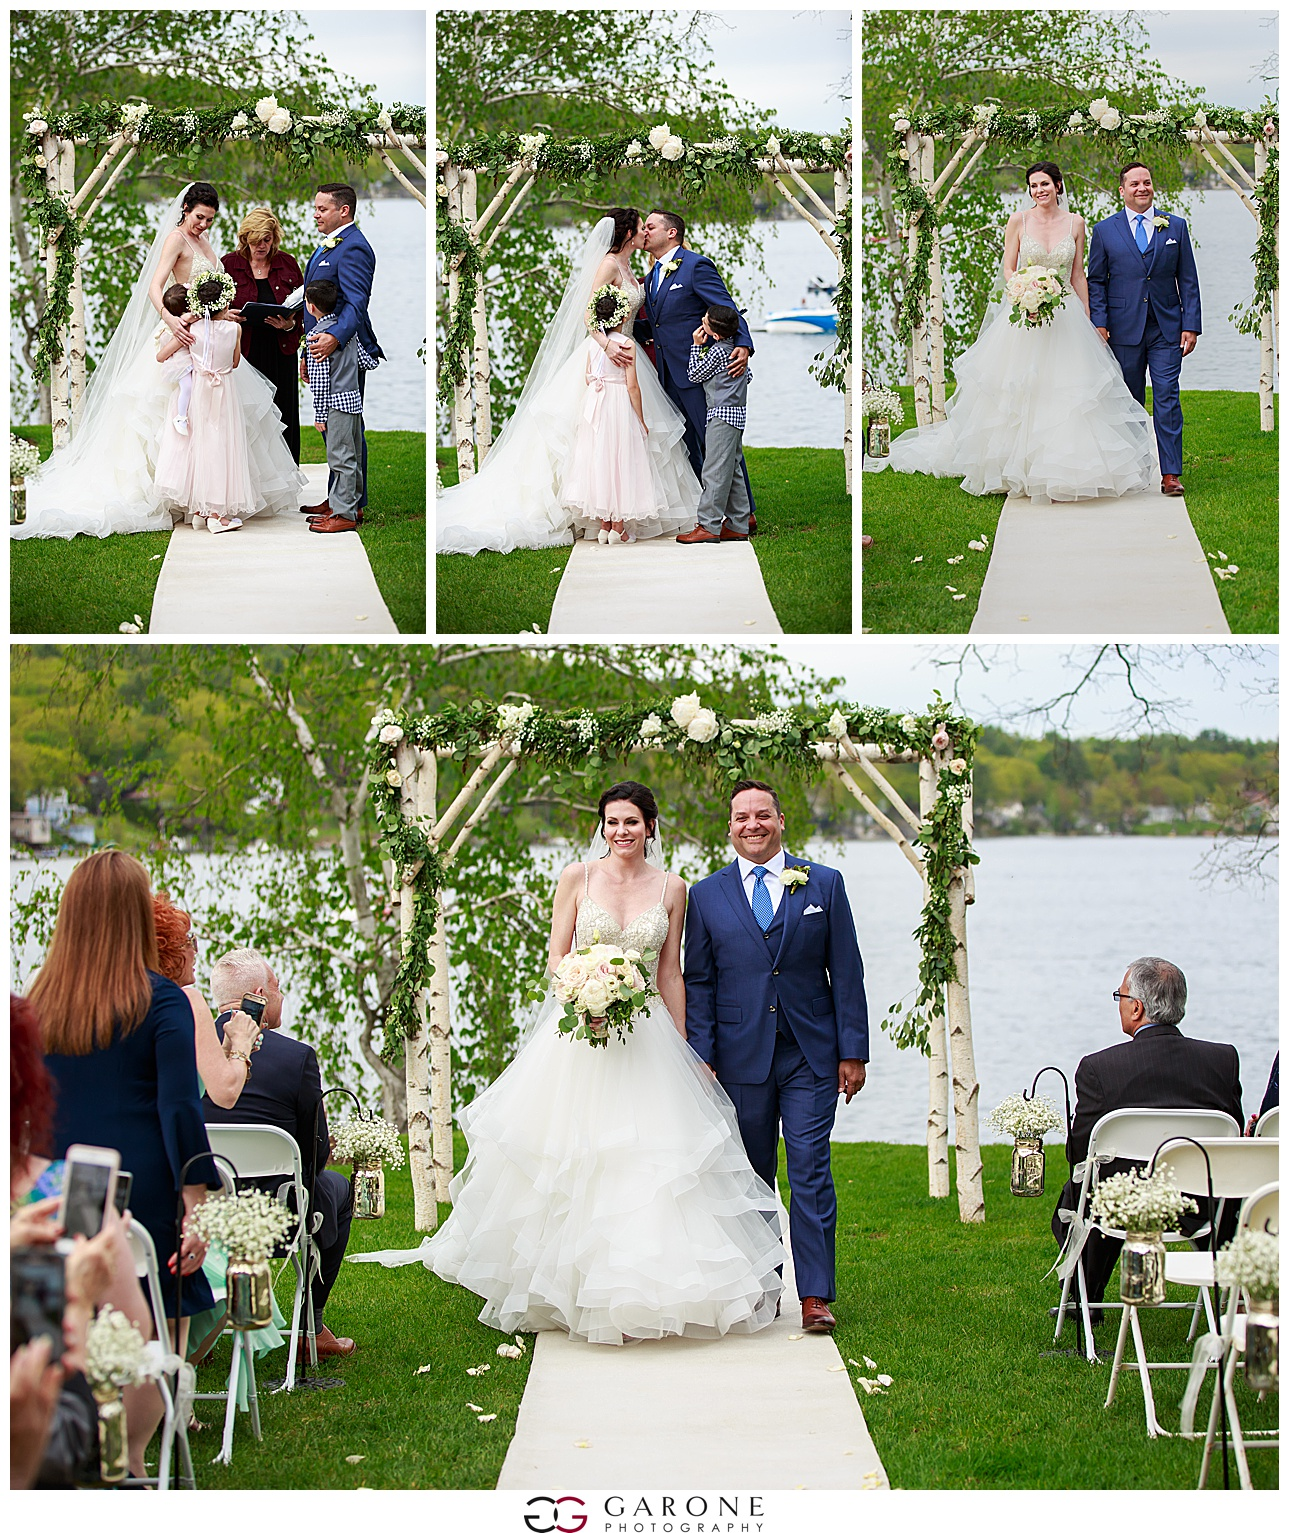 Shauna_Nathan_Carriage_House_Chuch_Landing_Lake_Winnapausakee_Wedding_0018.jpg